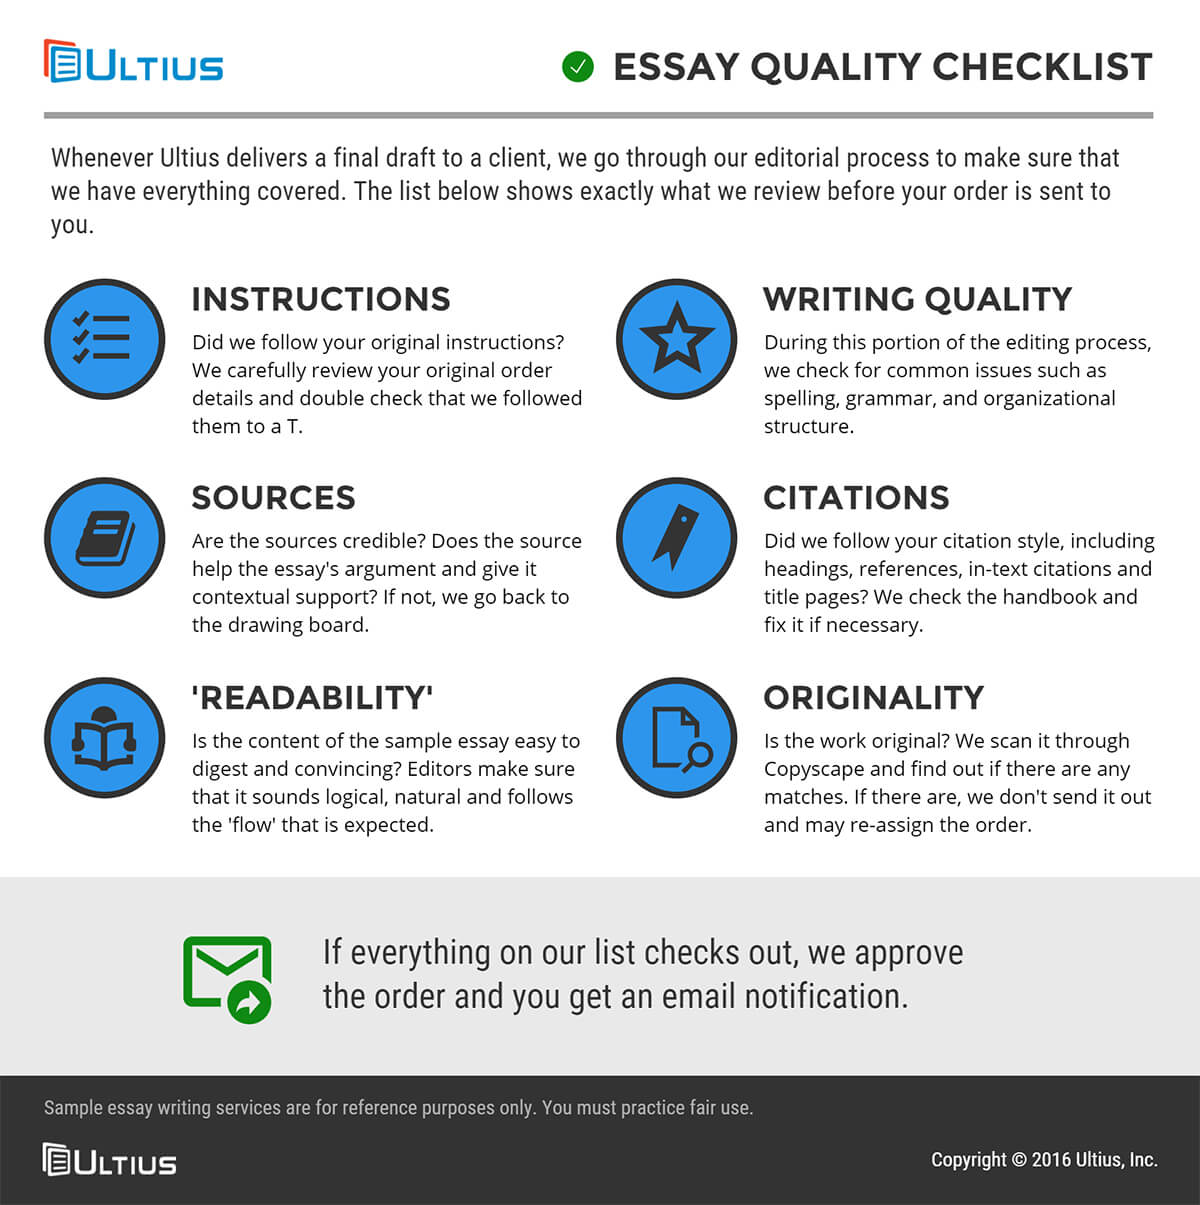 001 Buy An Essay Quality Checklist Best Argumentative Essays Online No Plagiarism Uk Now Full